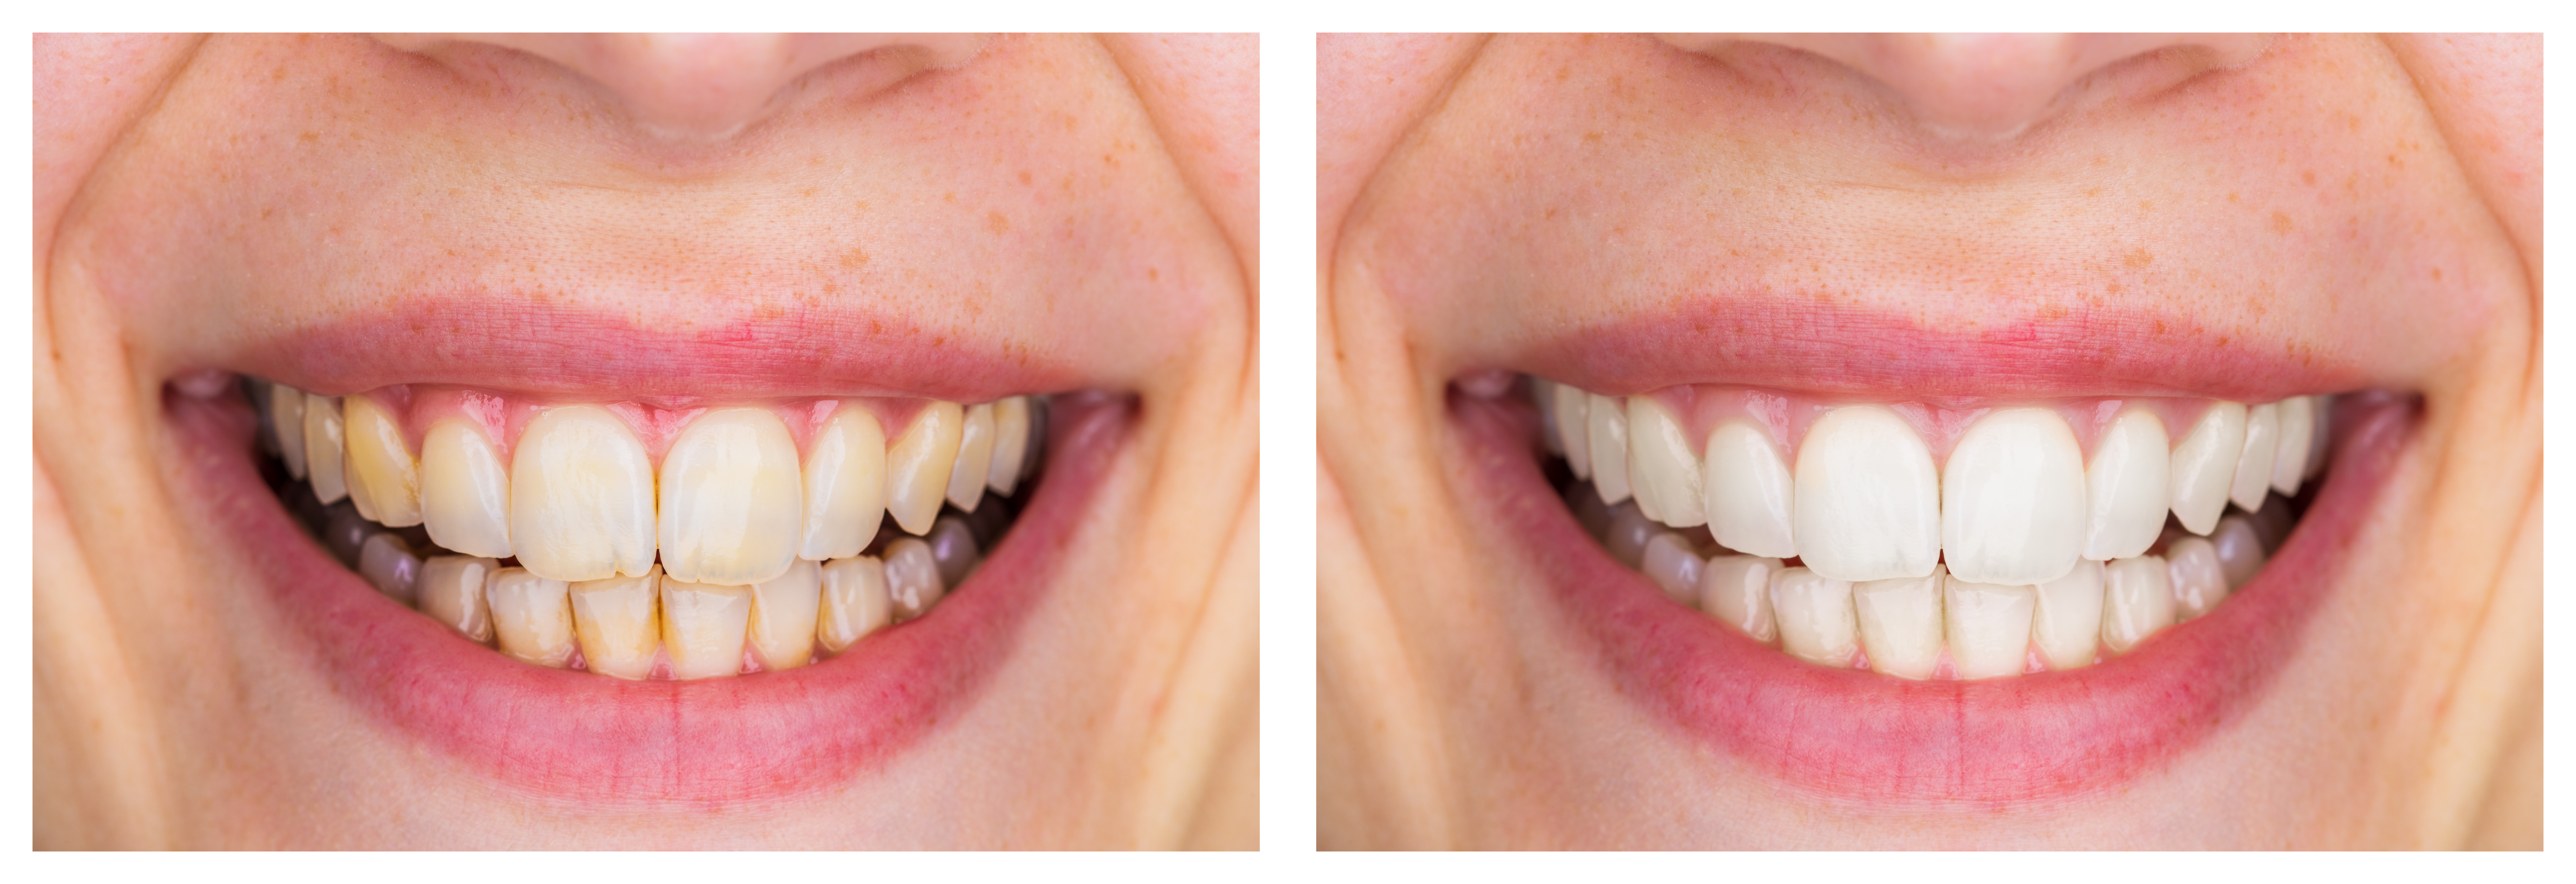 teeth whitening before and after photo viviane trinh dmd